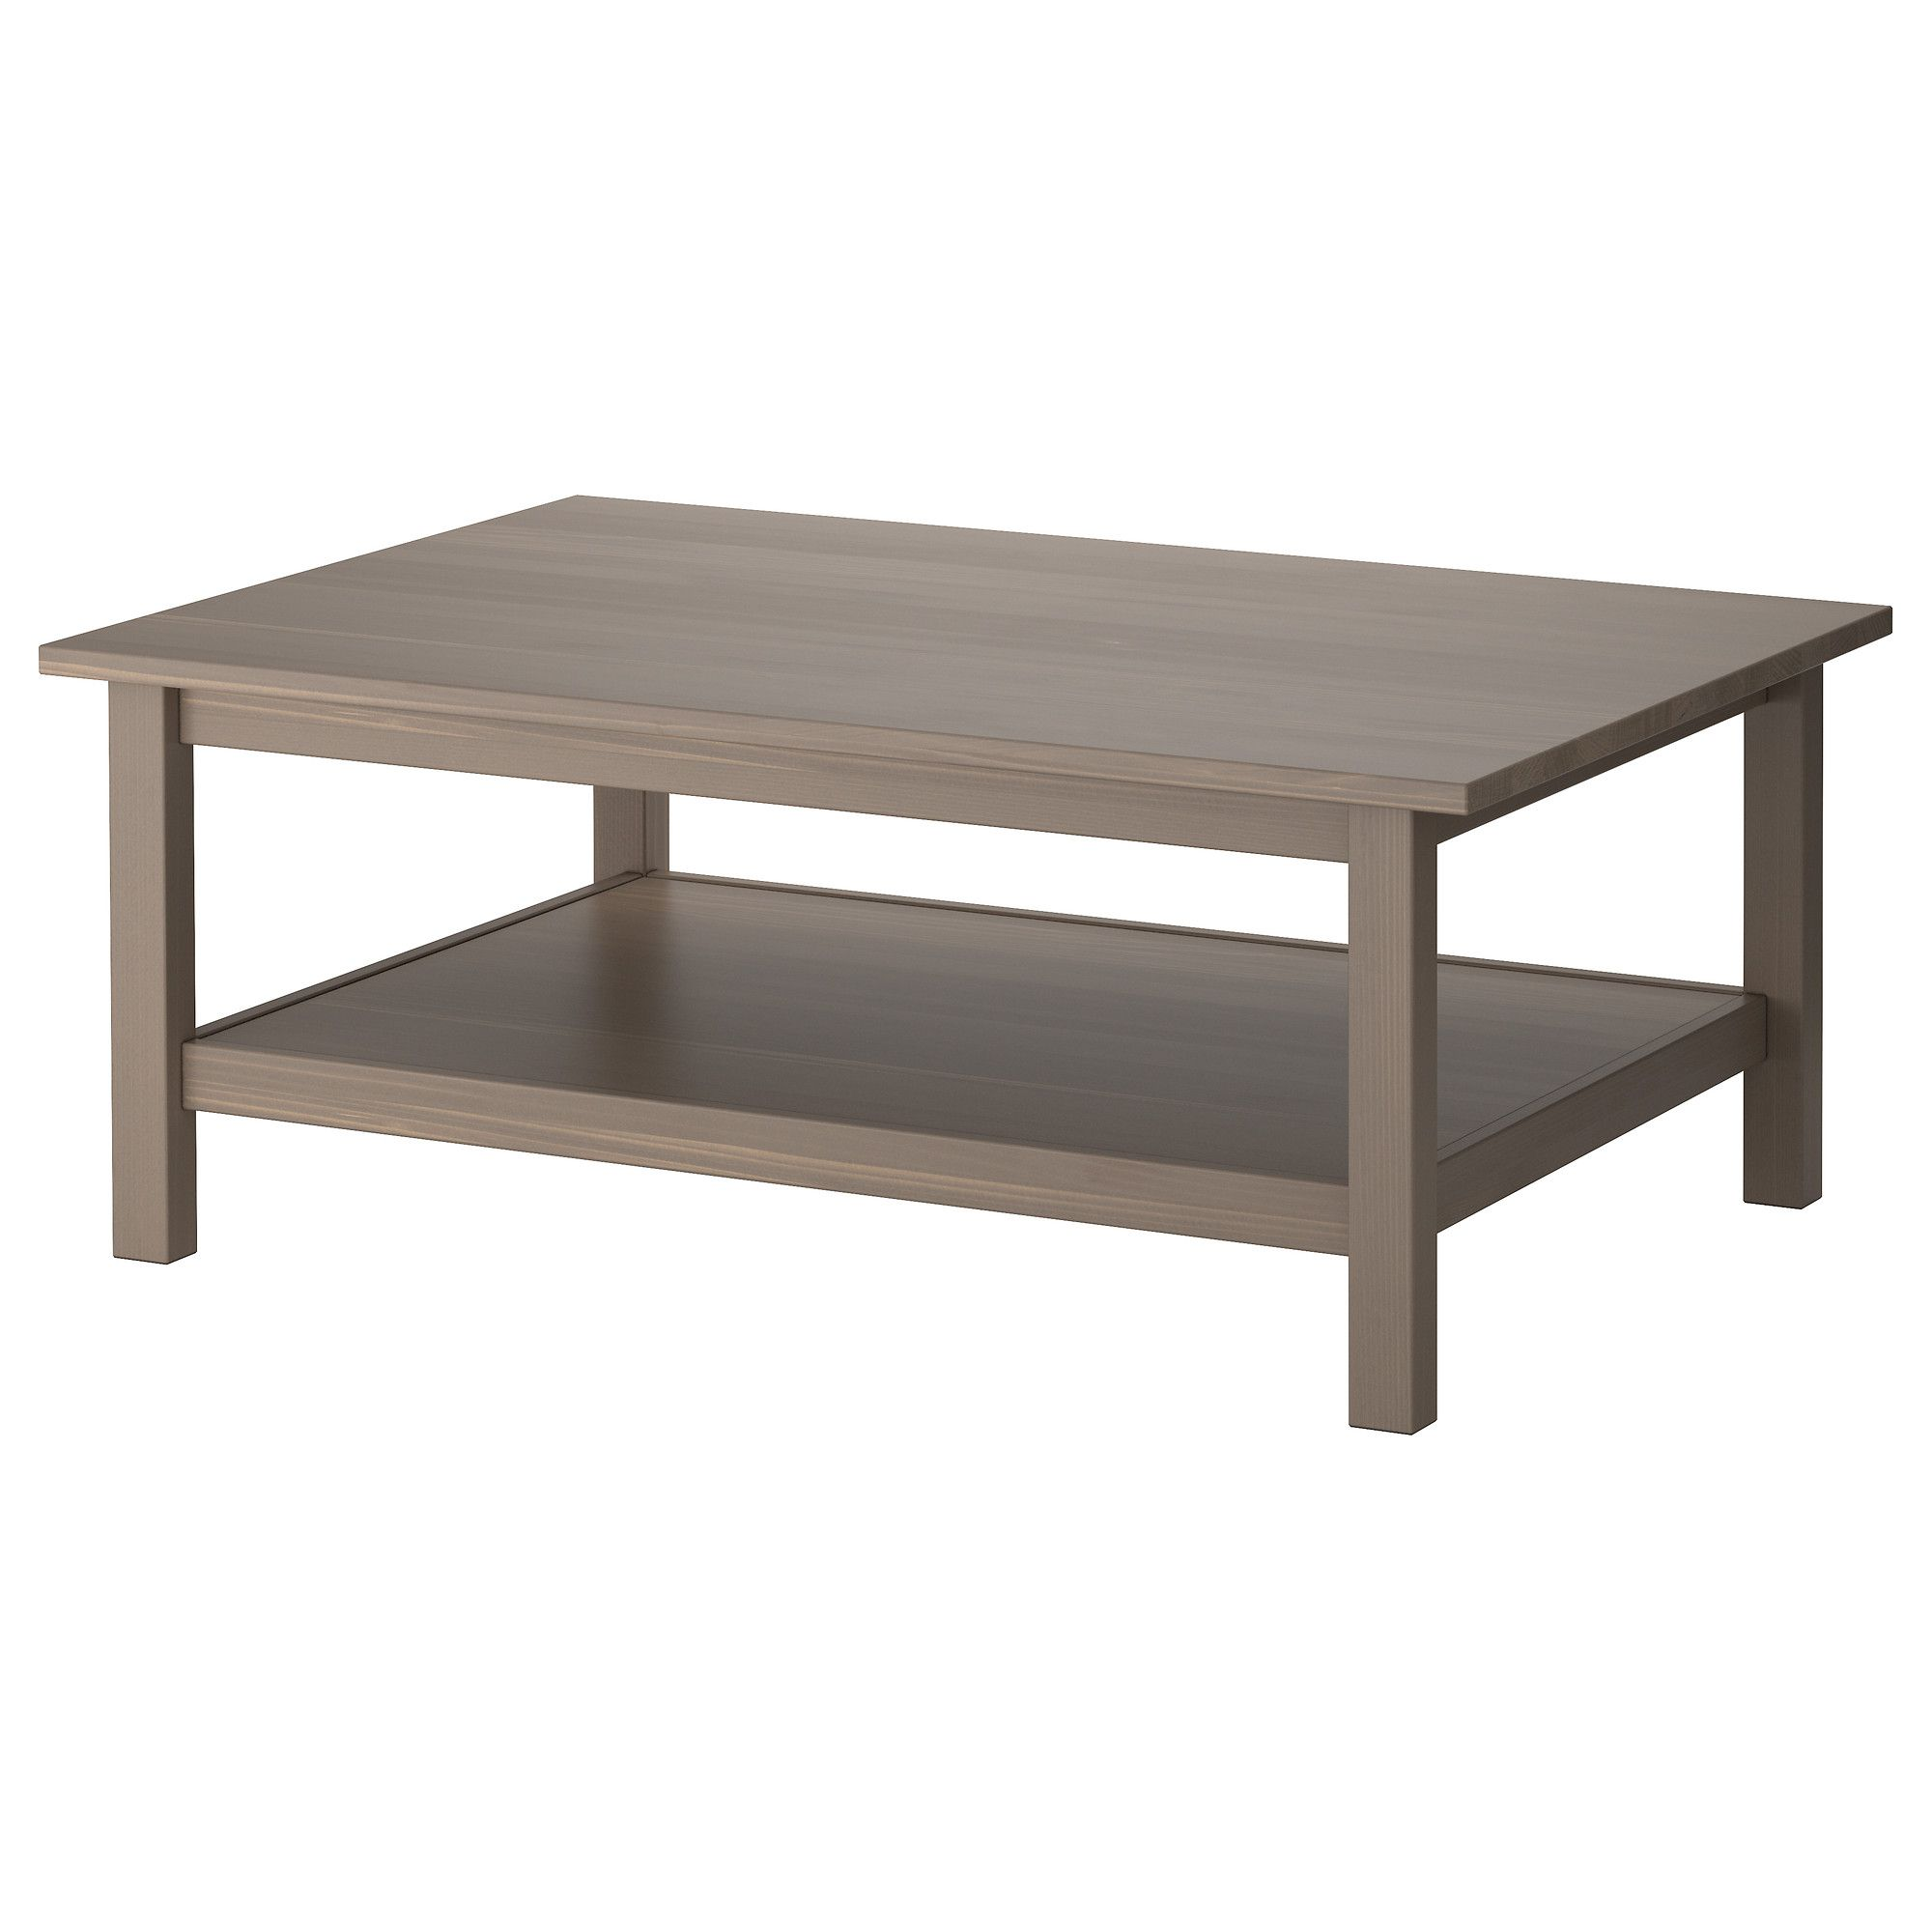 Hemnes coffee table black brown hemnes living rooms and room hemnes coffee table black brown geotapseo Image collections